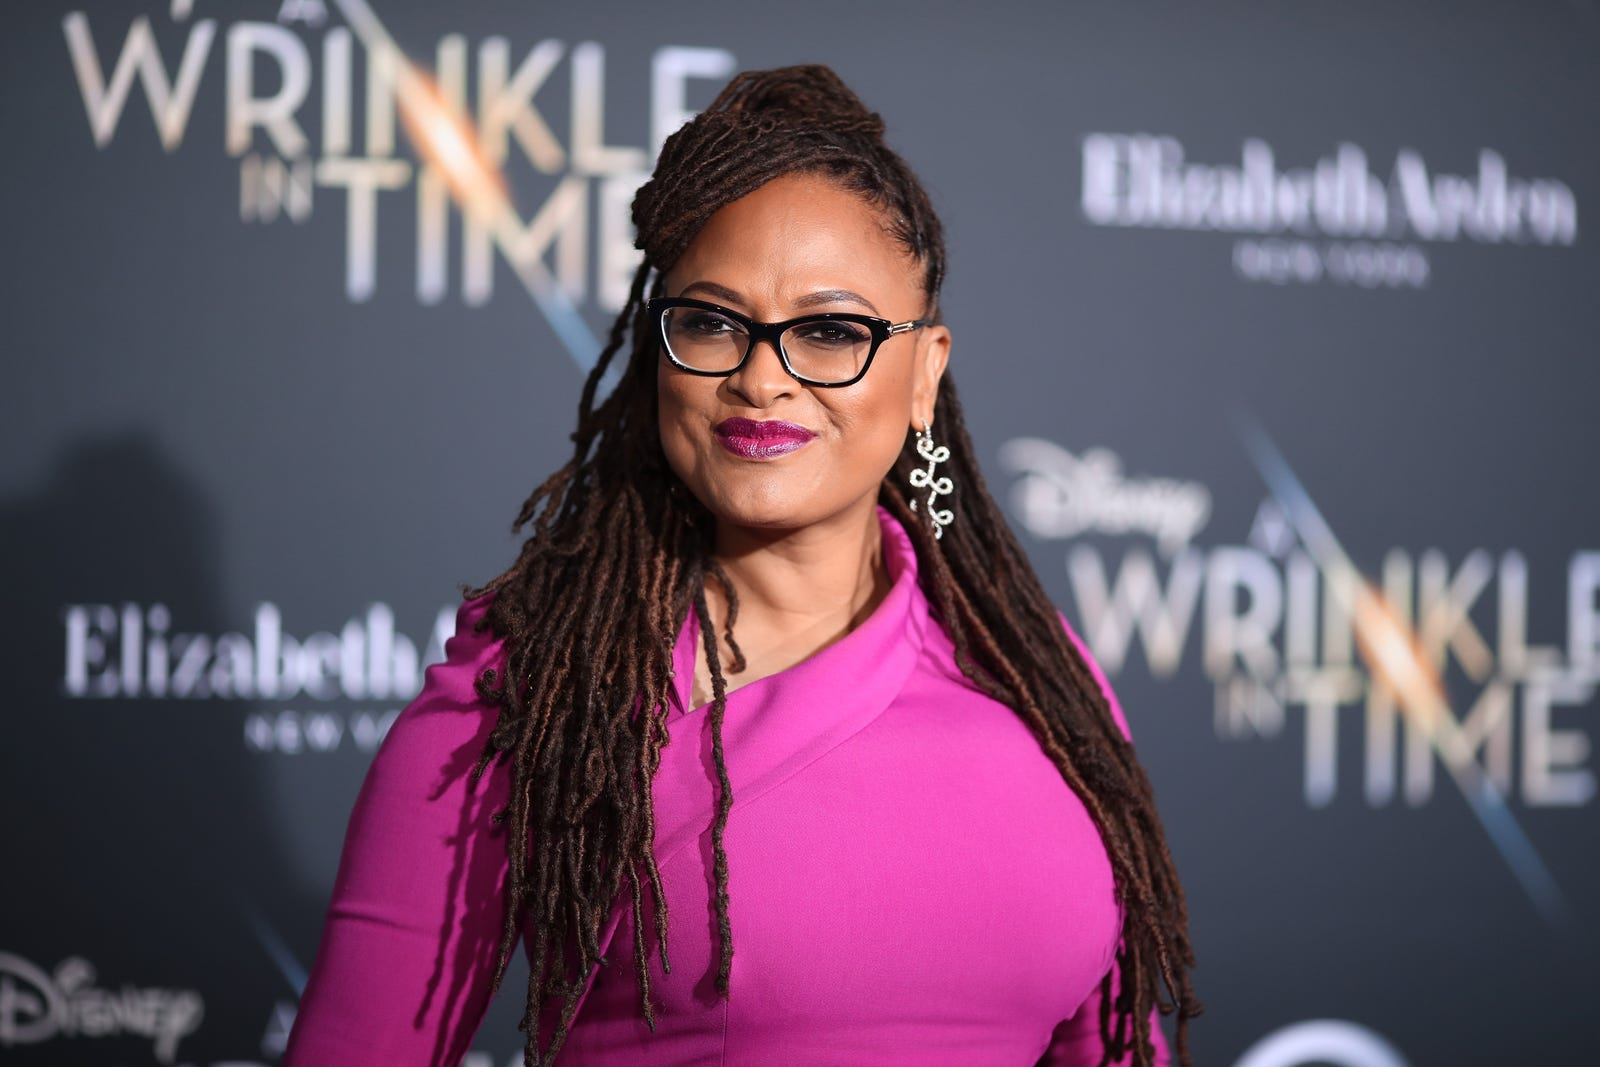 A Wrinkle in Time director Ava DuVernay, poised in pink (Christopher Polk/Getty Images)